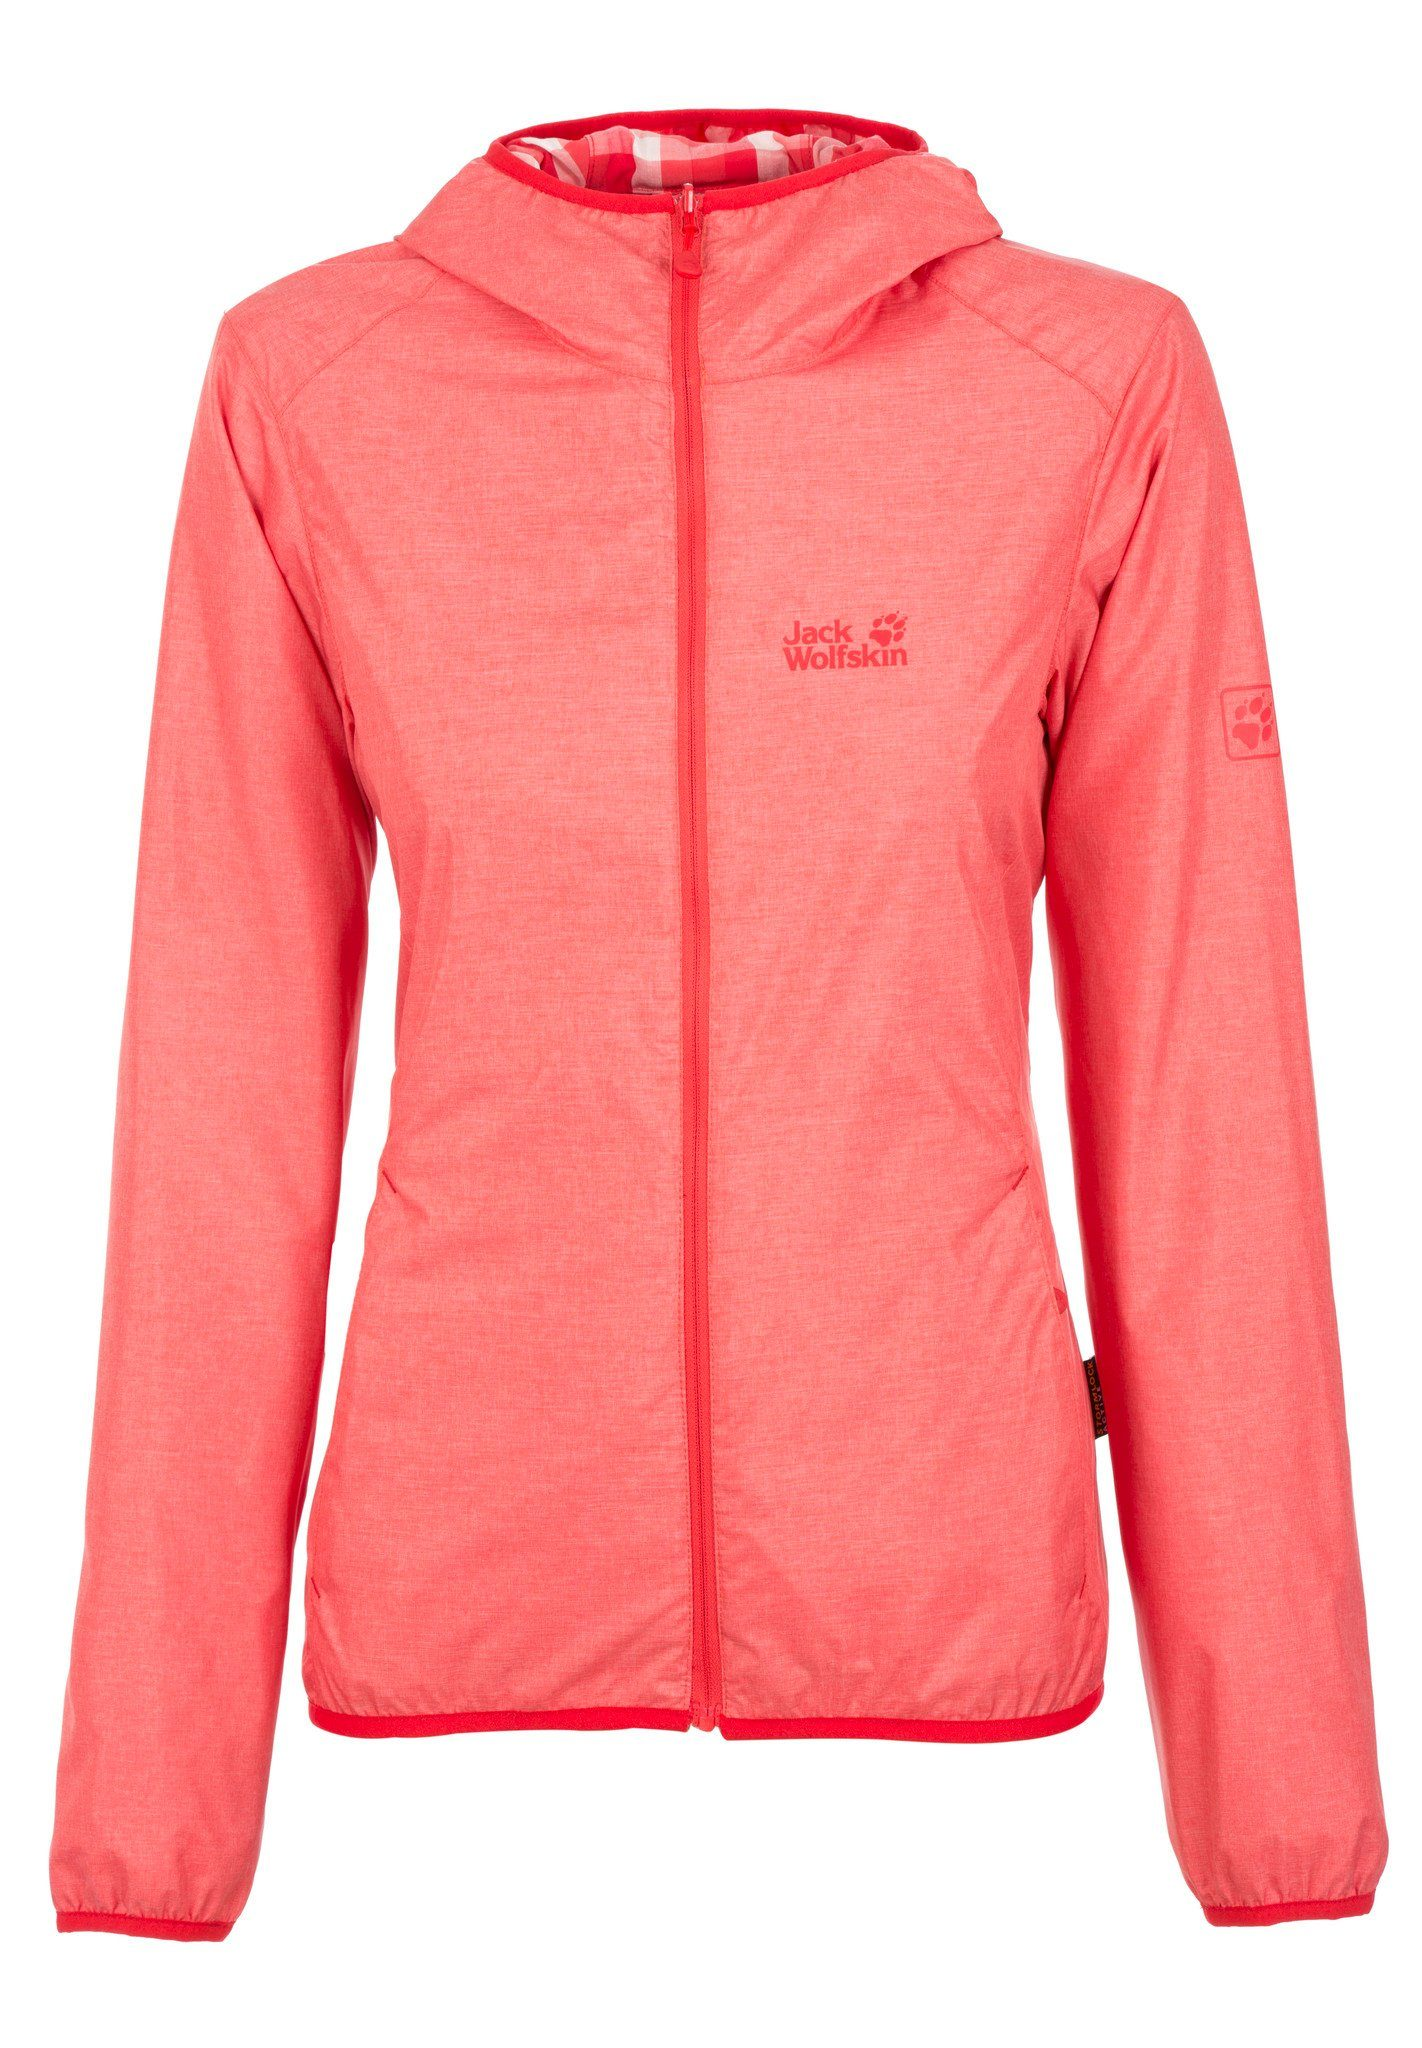 Jack Wolfskin Outdoorjacke »Soliton Jacket Women«